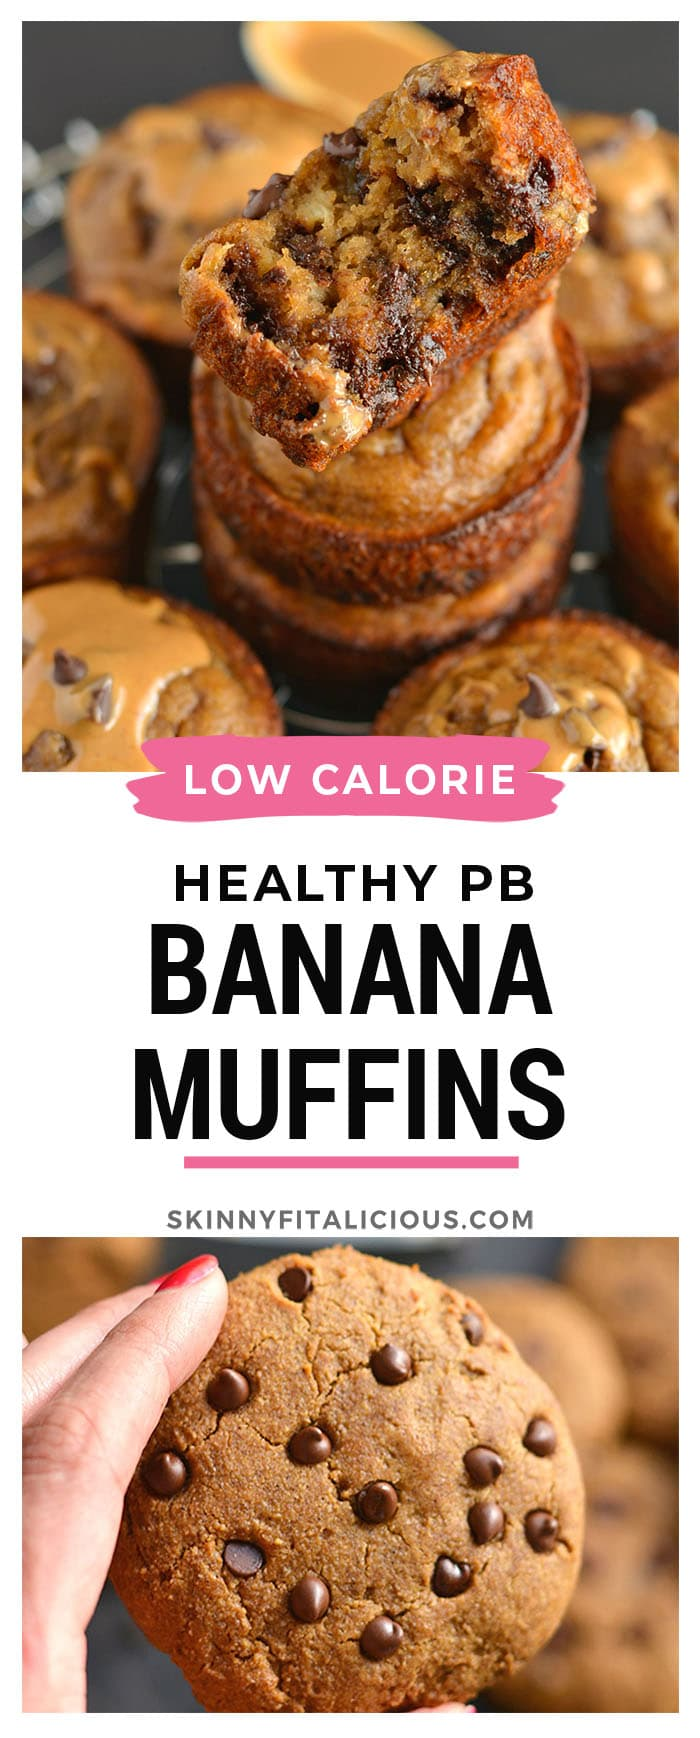 Flourless Peanut Butter Chocolate Chip Blender Muffins made with 8 every dayingredients. This soon to be favorite recipe'sa quick mix in the blender for the easiest baking of your life!